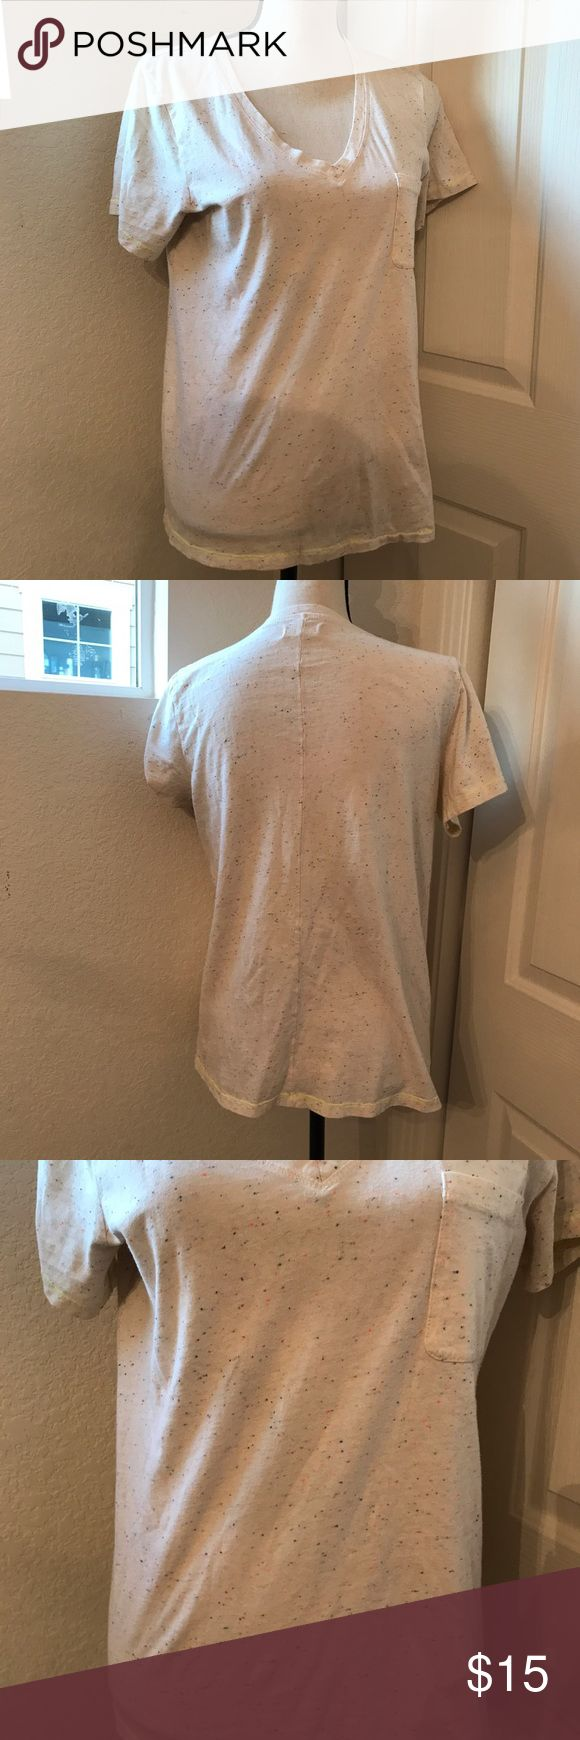 """Madewell V-neck T-shirt Speckled Cream Tee Women L ⭐️️cream speckled top ⭐️️cotton top Short Sleeve w/ yellow stitching  ⭐️️Women's Large  ⭐️️light pilling ⭐️️Approx Measurements:  Laying flat bust 18.75"""" Length 24"""" 070917-4 🚫trades please Madewell Tops Tees - Short Sleeve"""